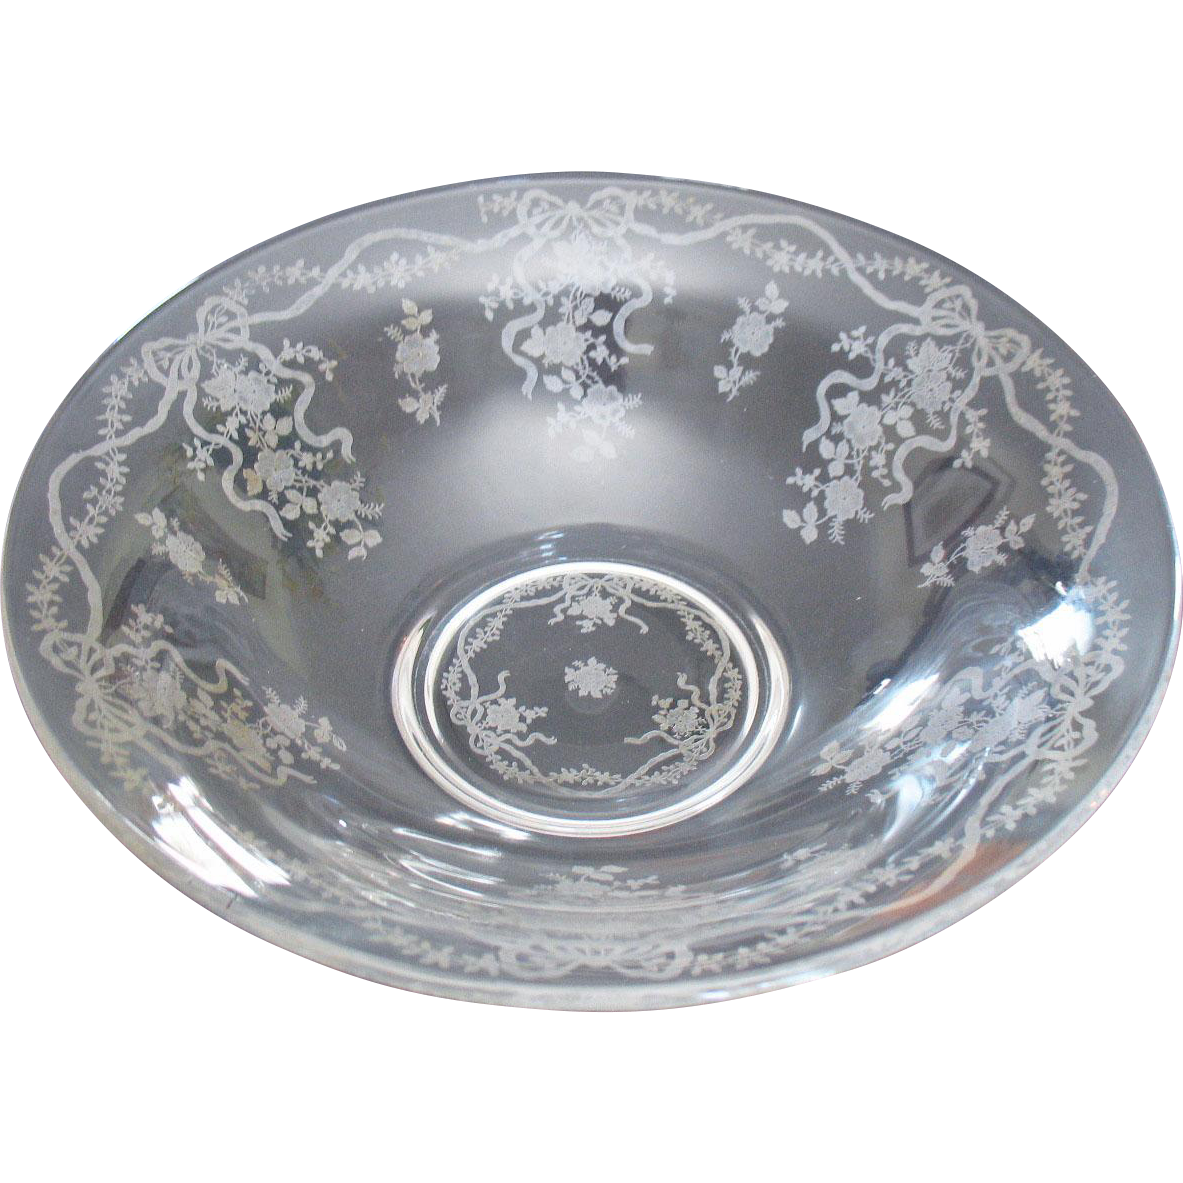 Vintage Fostoria Crystal Flared Bowl Romance Etching 1942-71 Very Good Condition